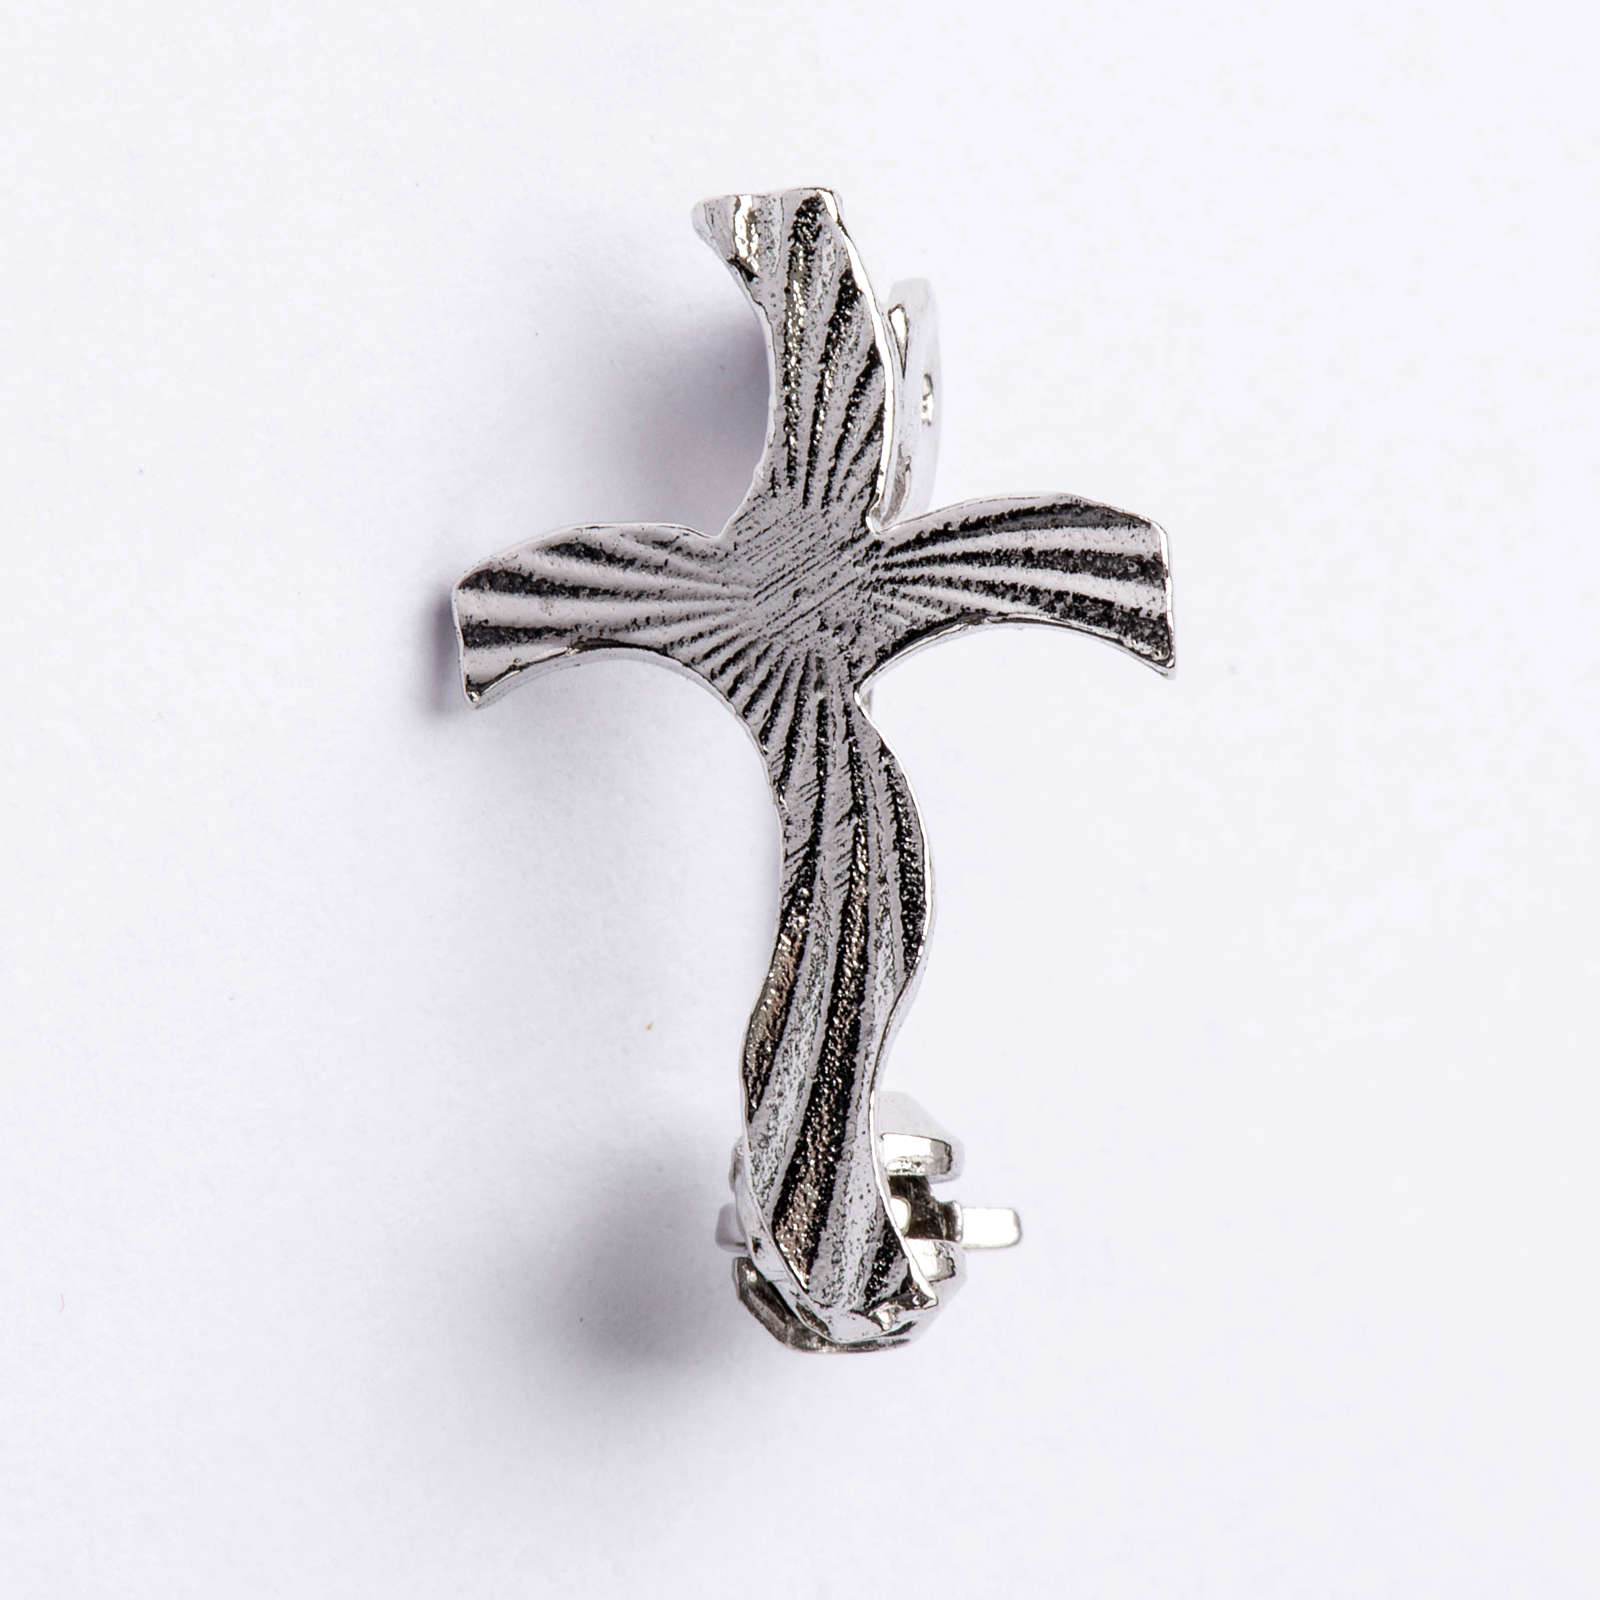 Clergy cross brooch, stylised and knurled in 925 silver 4